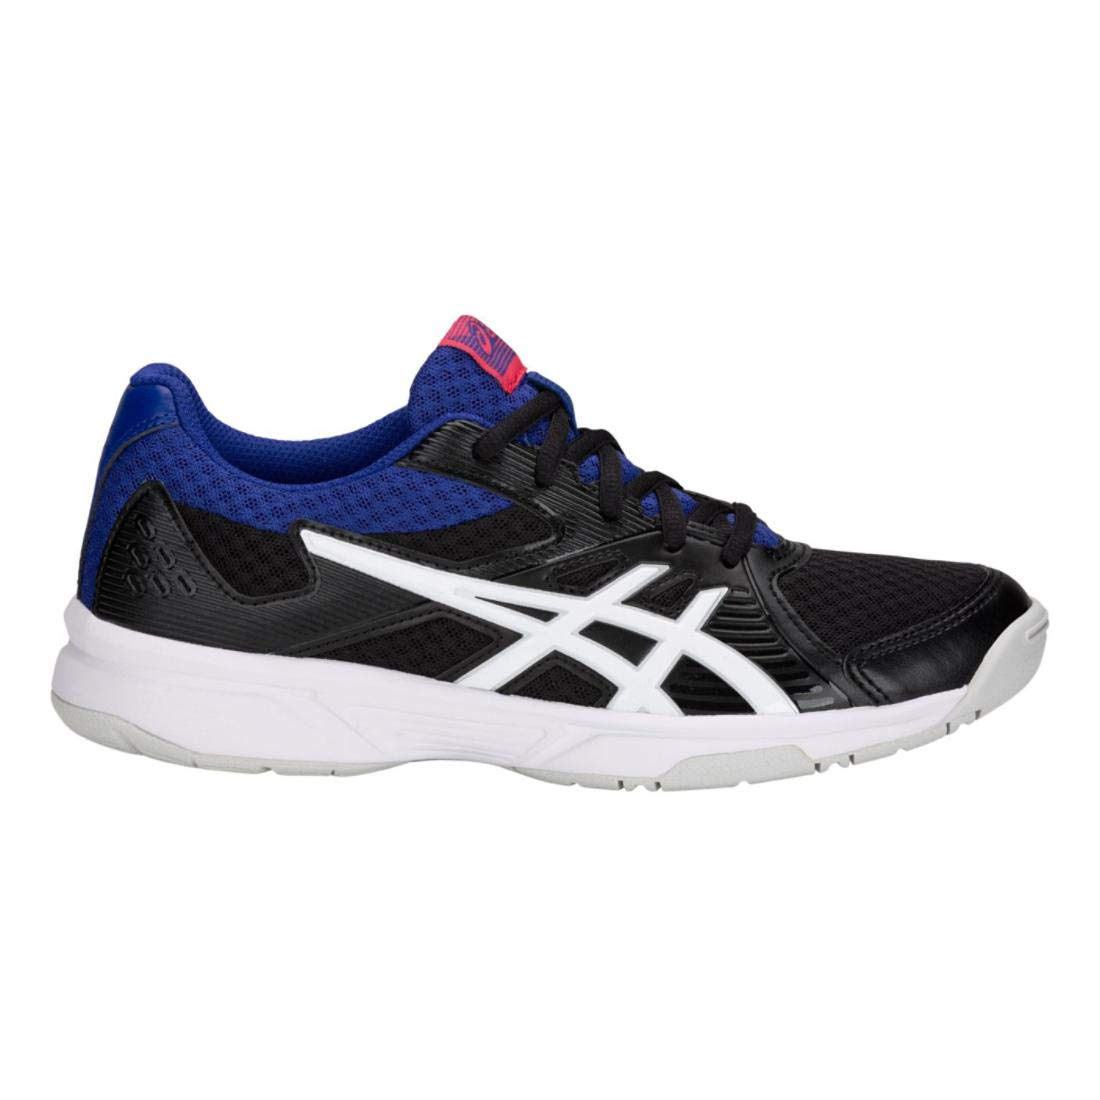 ASICS Women's Upcourt 3 Volleyball Shoes, Black/White, Size 7.5 by ASICS